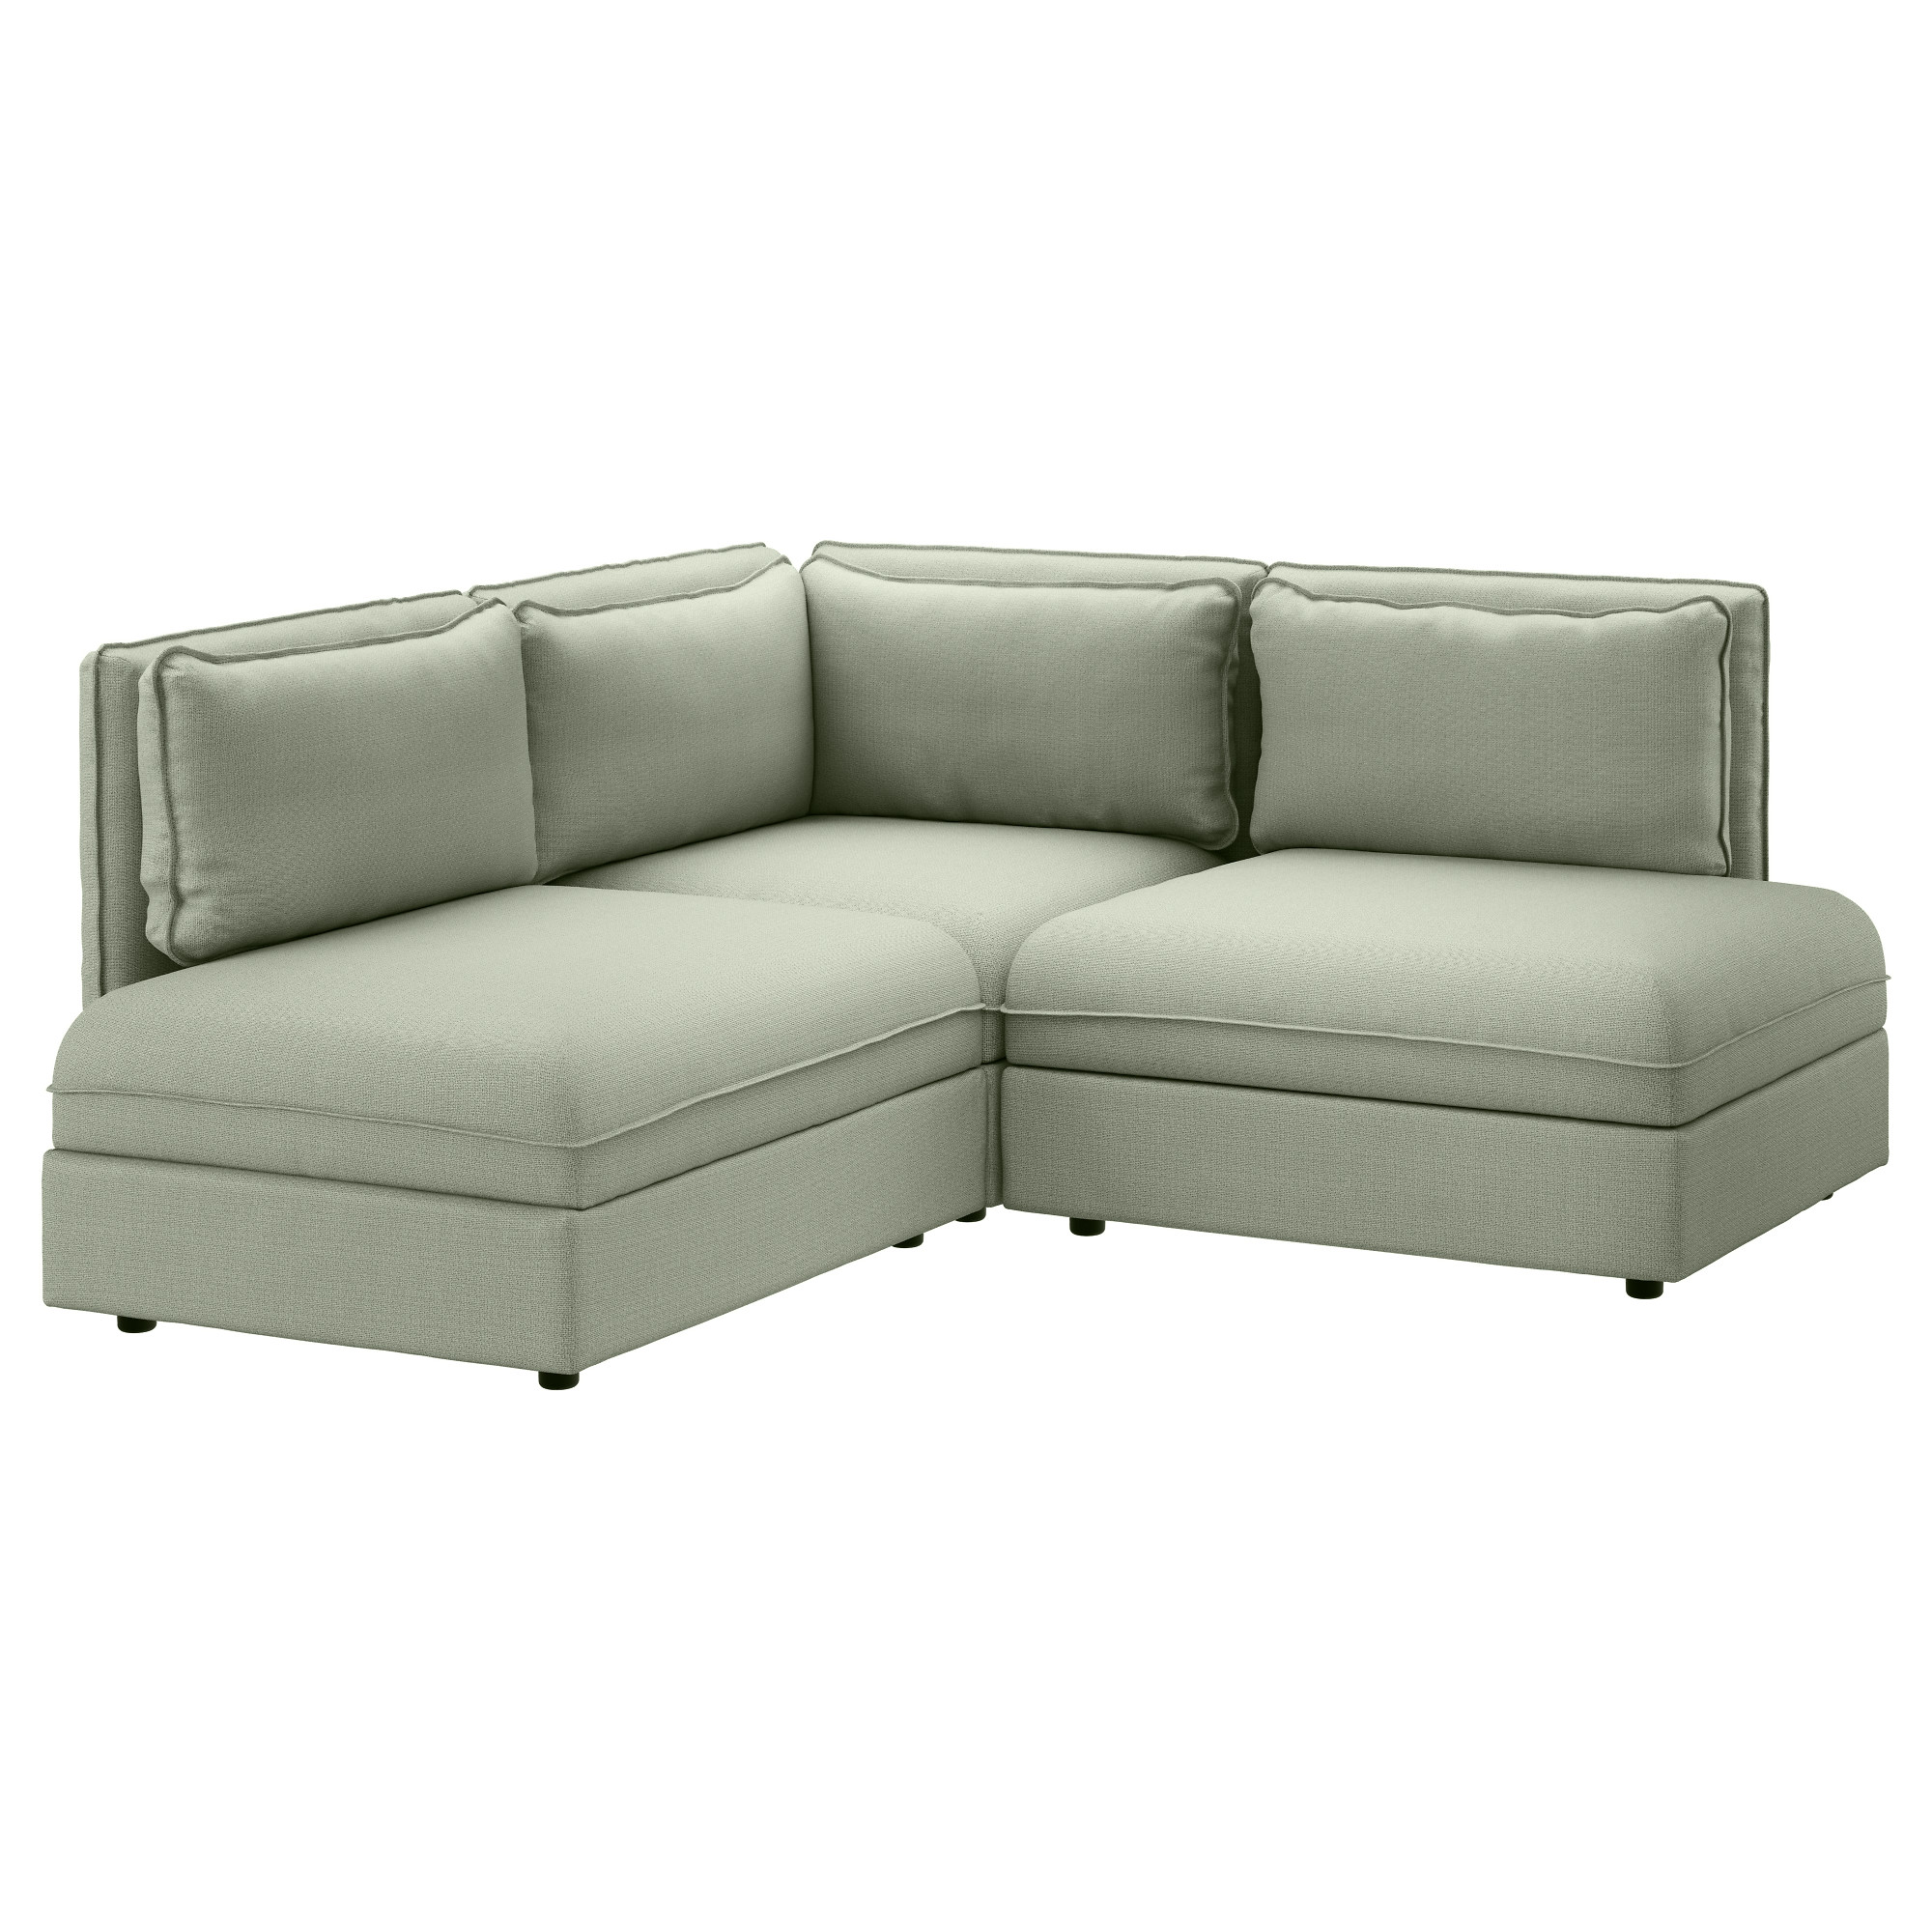 sc 1 st  Ikea : ikea small sectional - Sectionals, Sofas & Couches